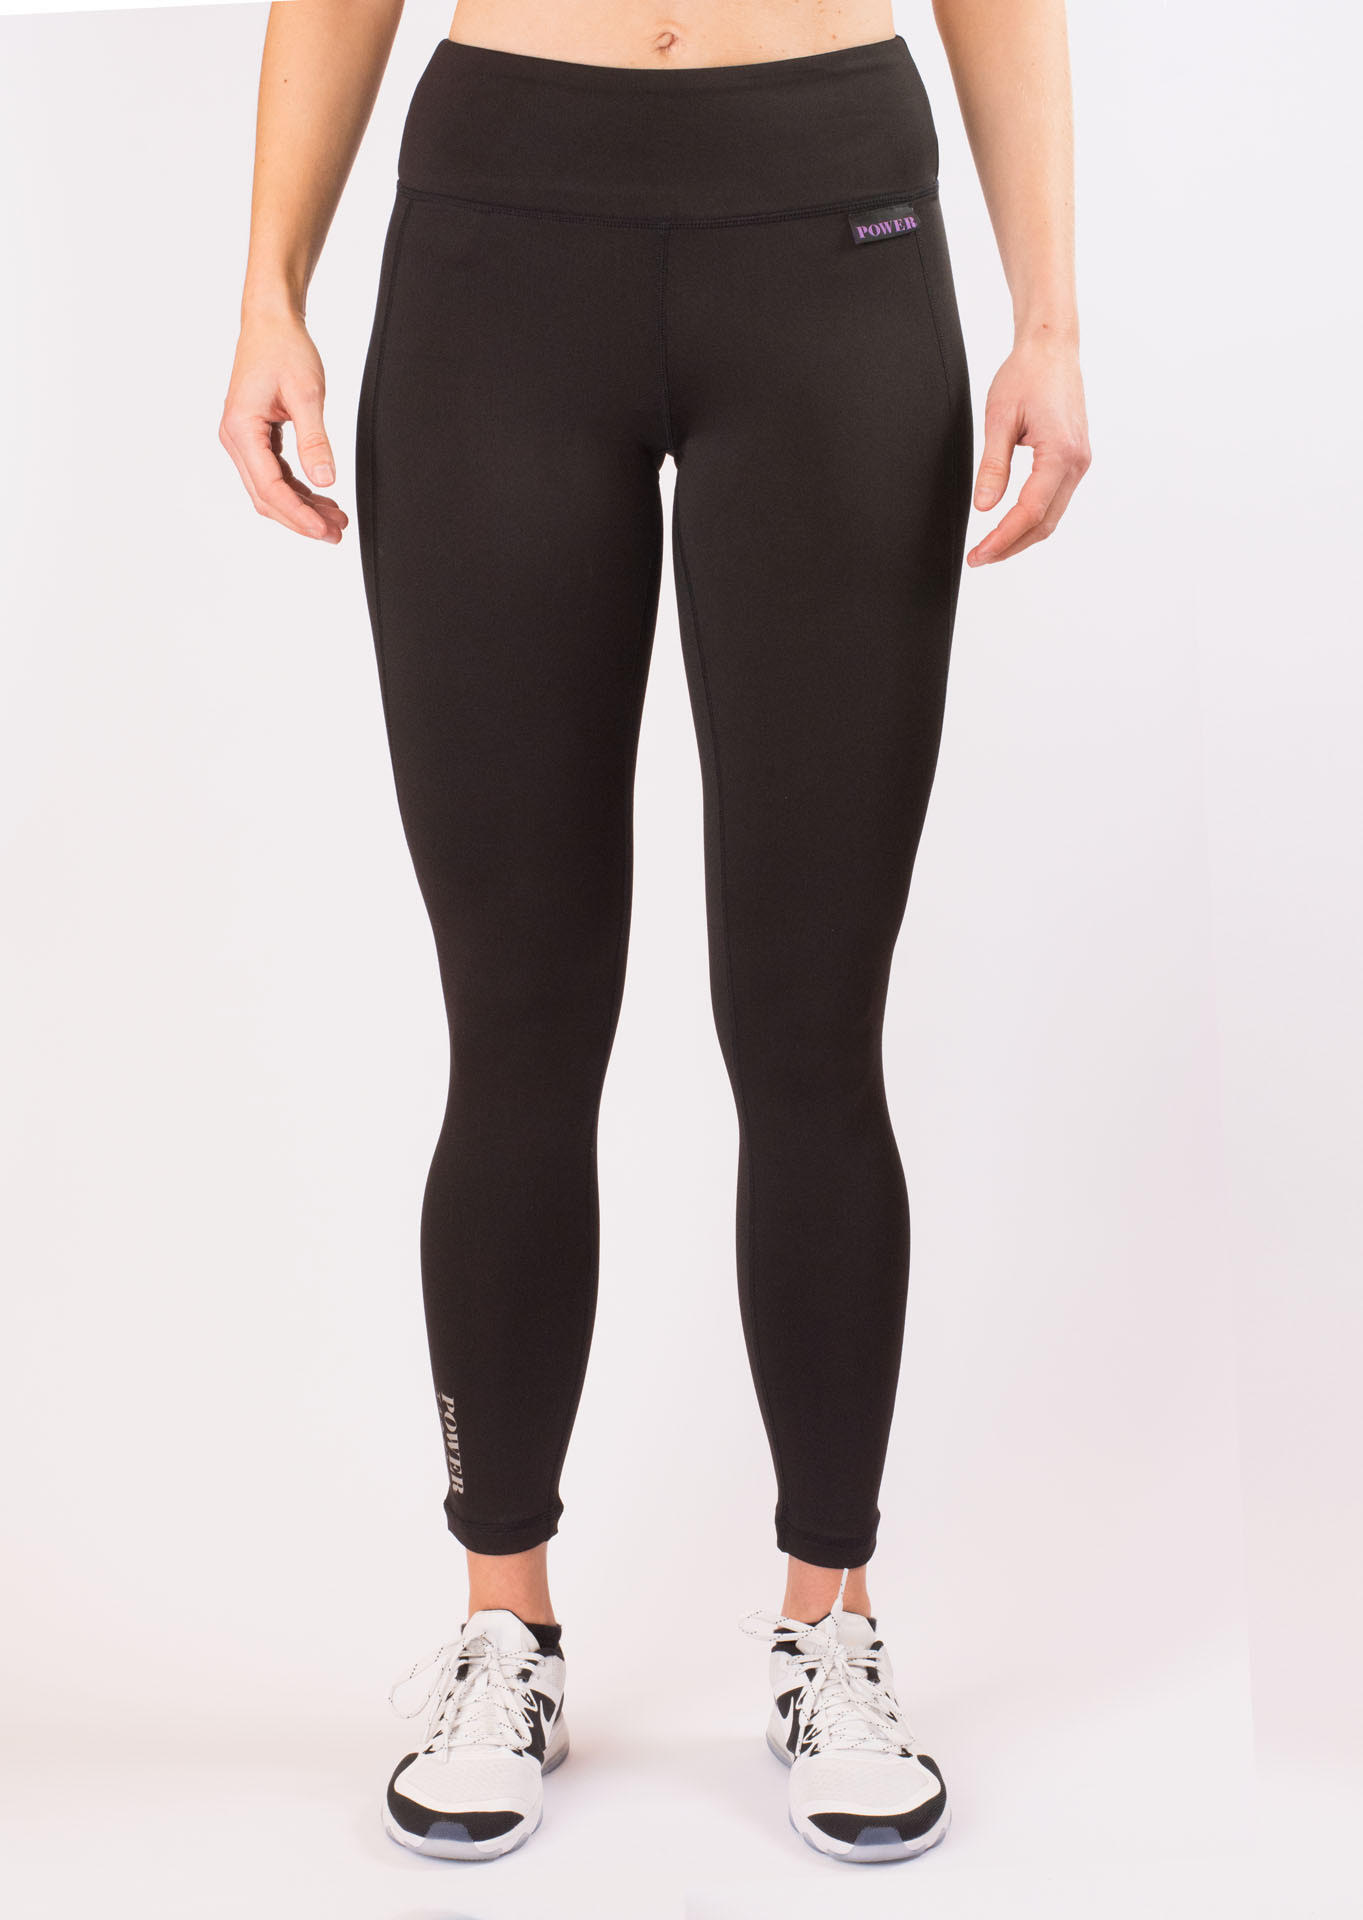 POWER of Sweden Intensity Tights, Black